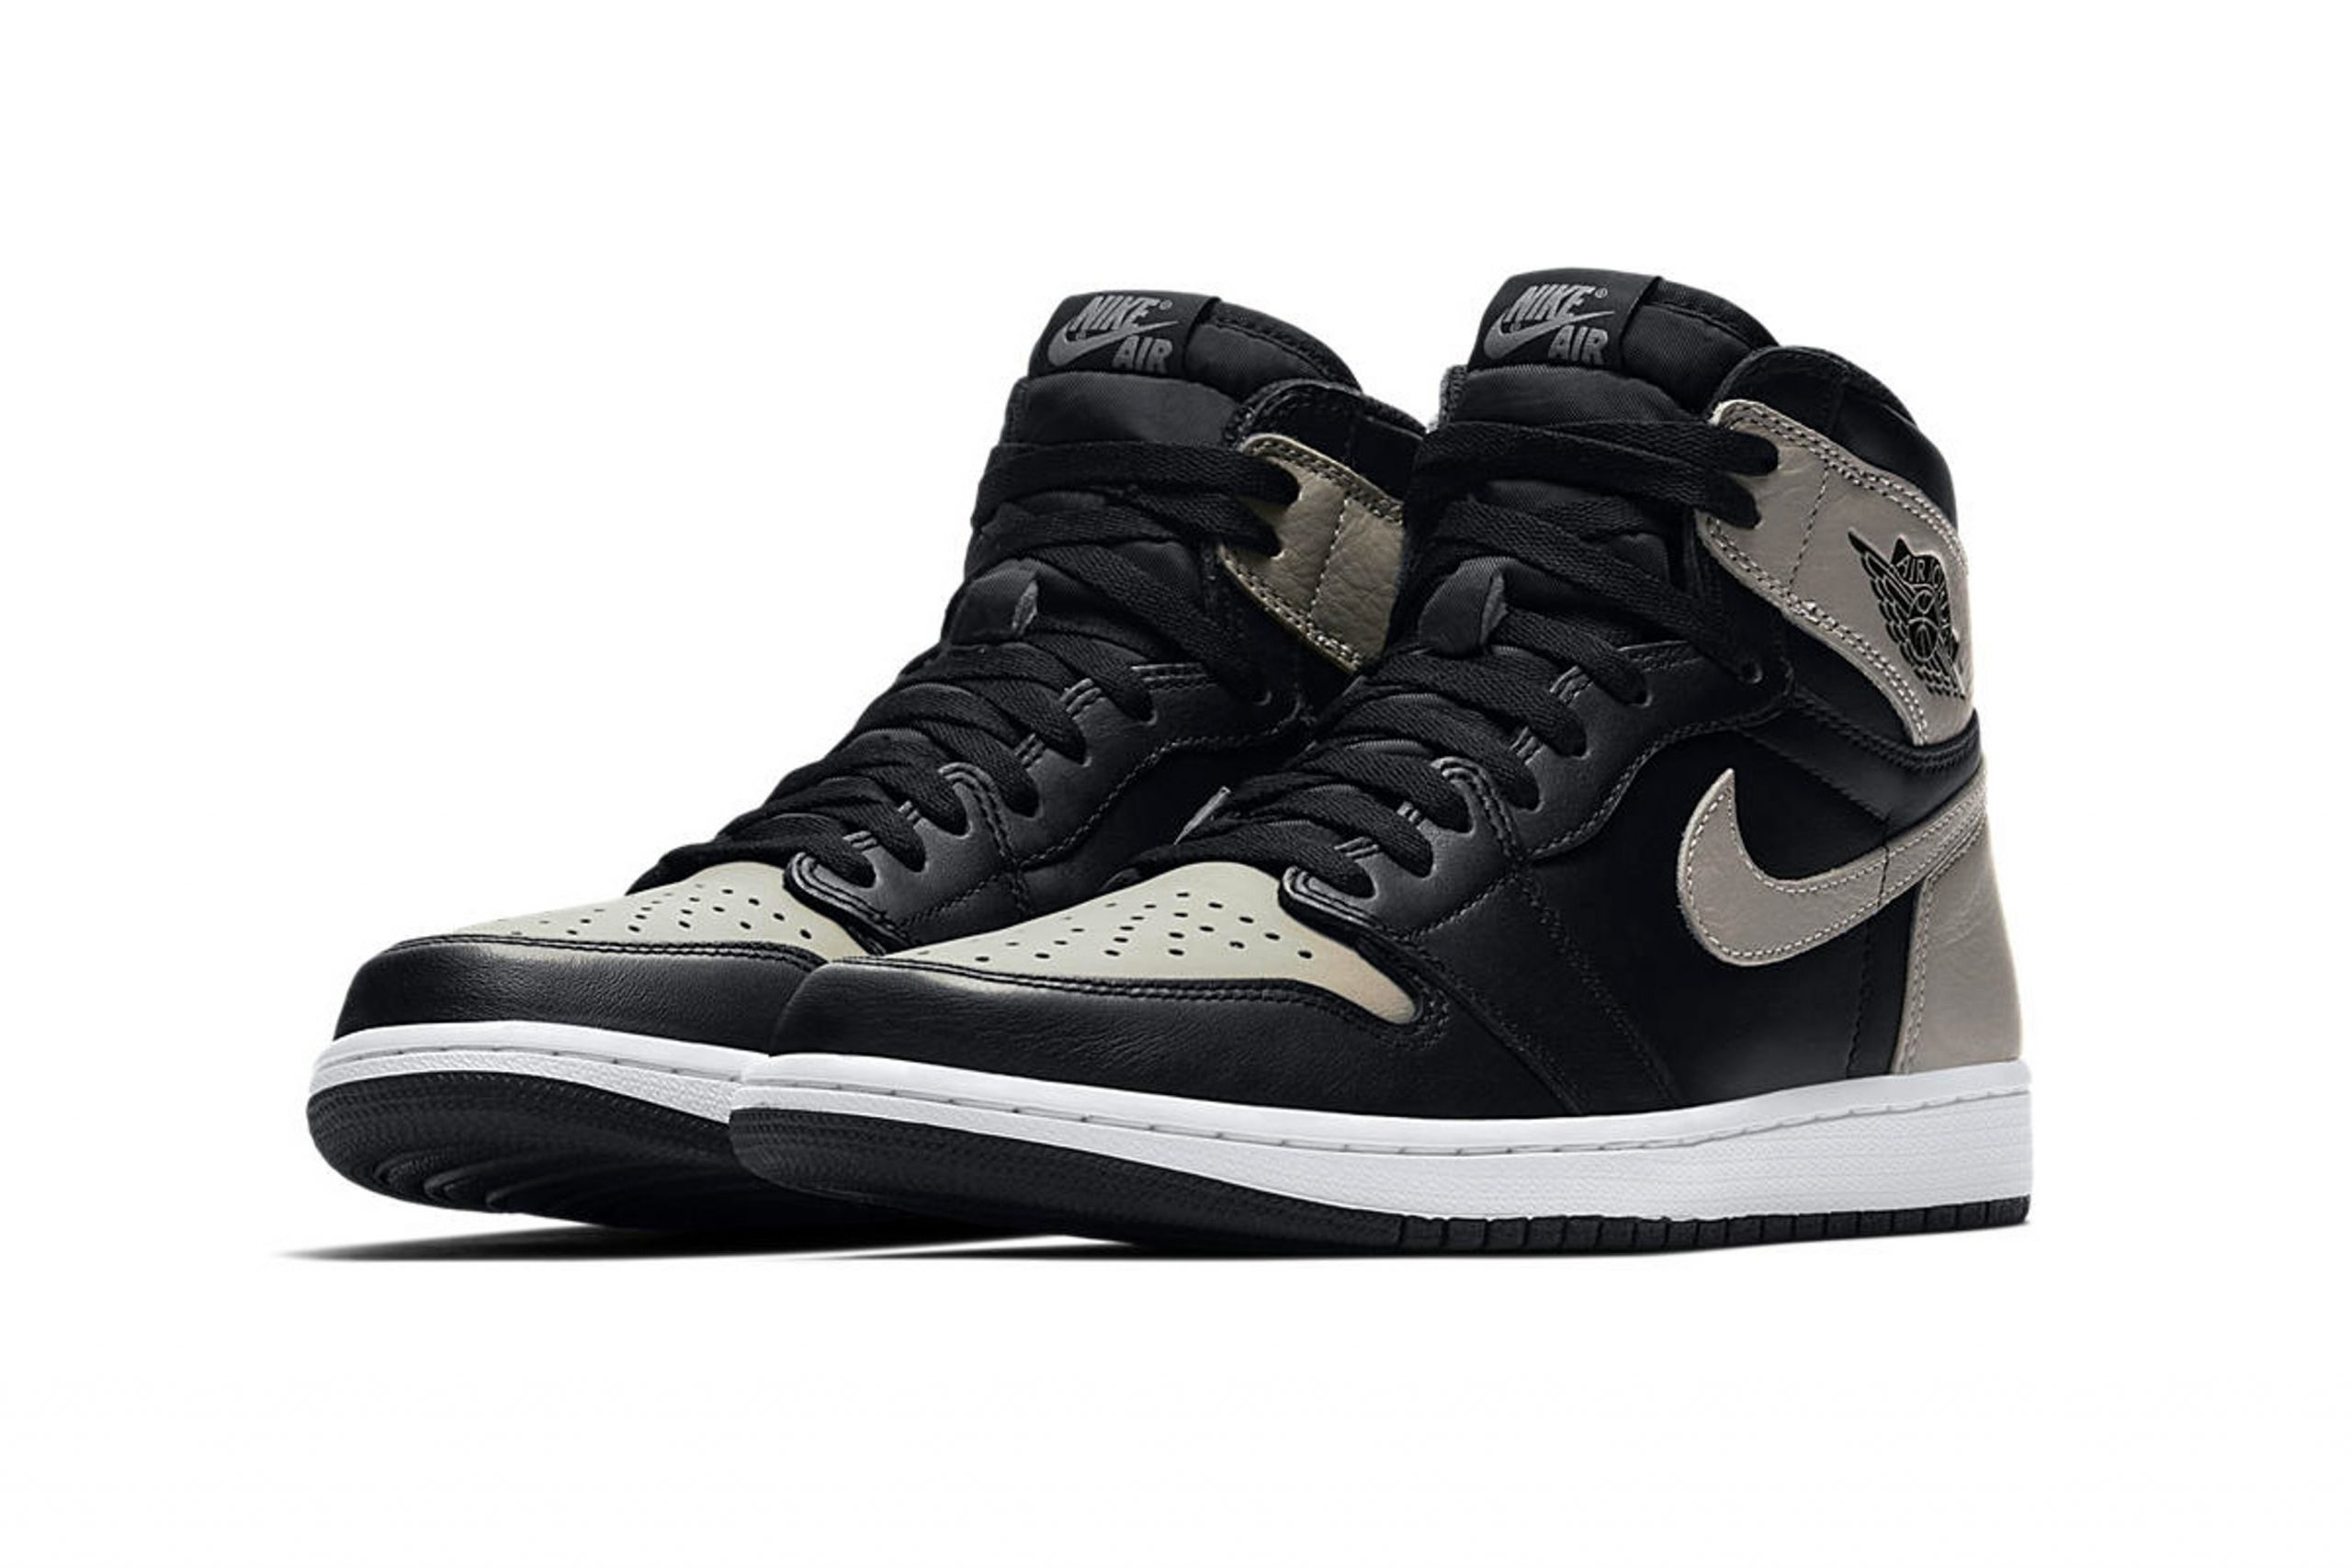 After the Banned and Royal color schemes, the Air Jordan 1